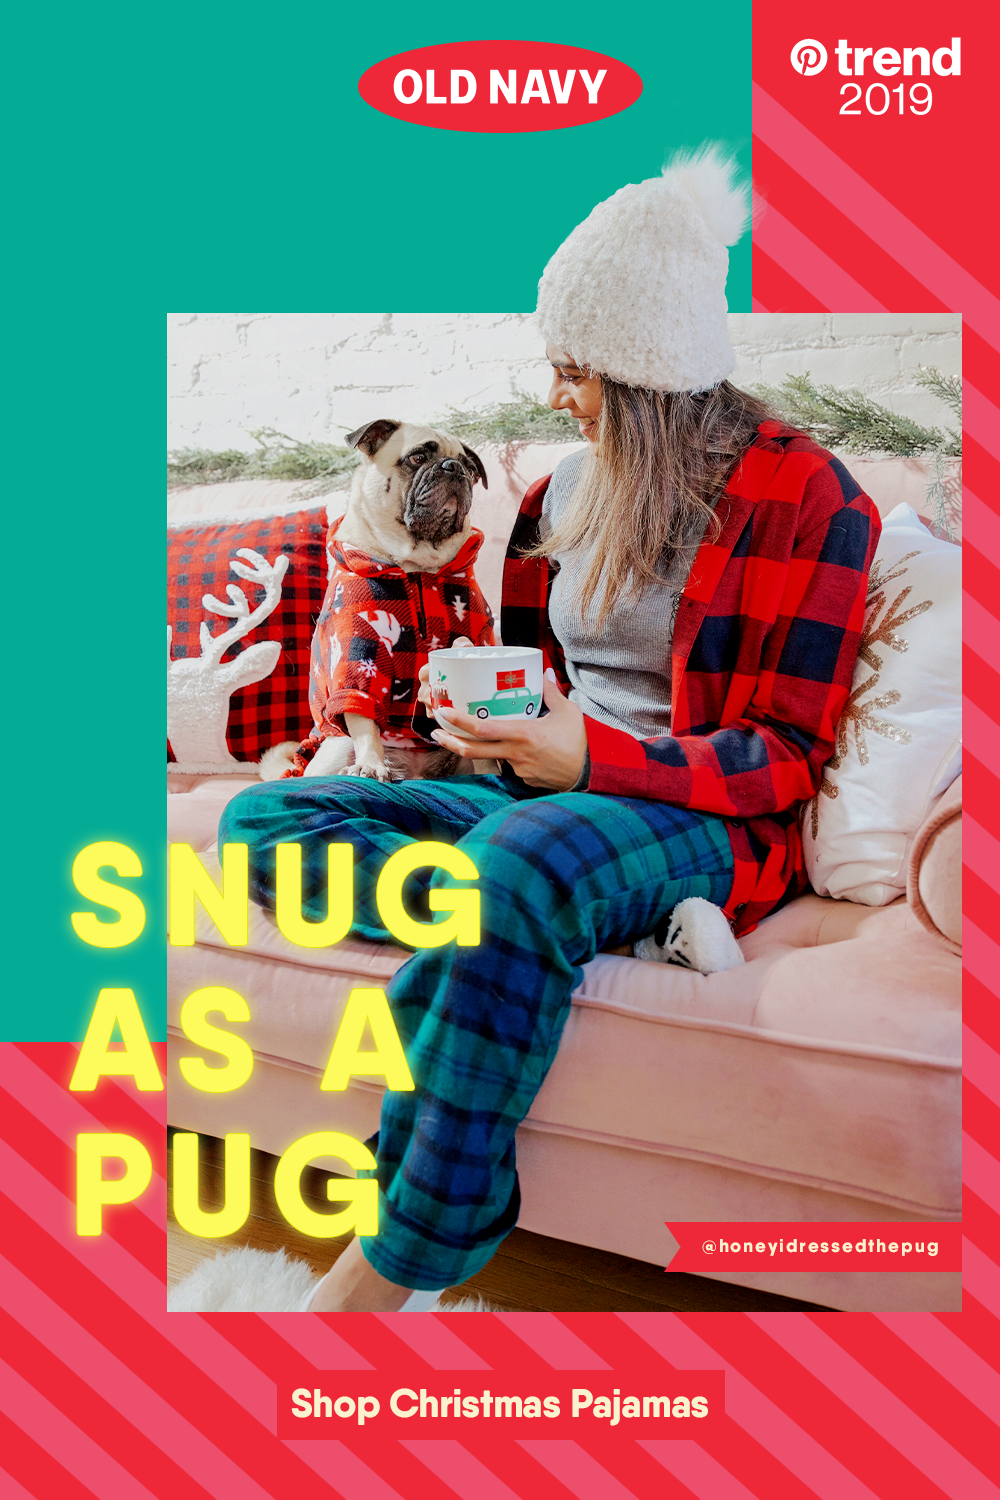 It's the perfect time to cozy up with Old Navy's jingle